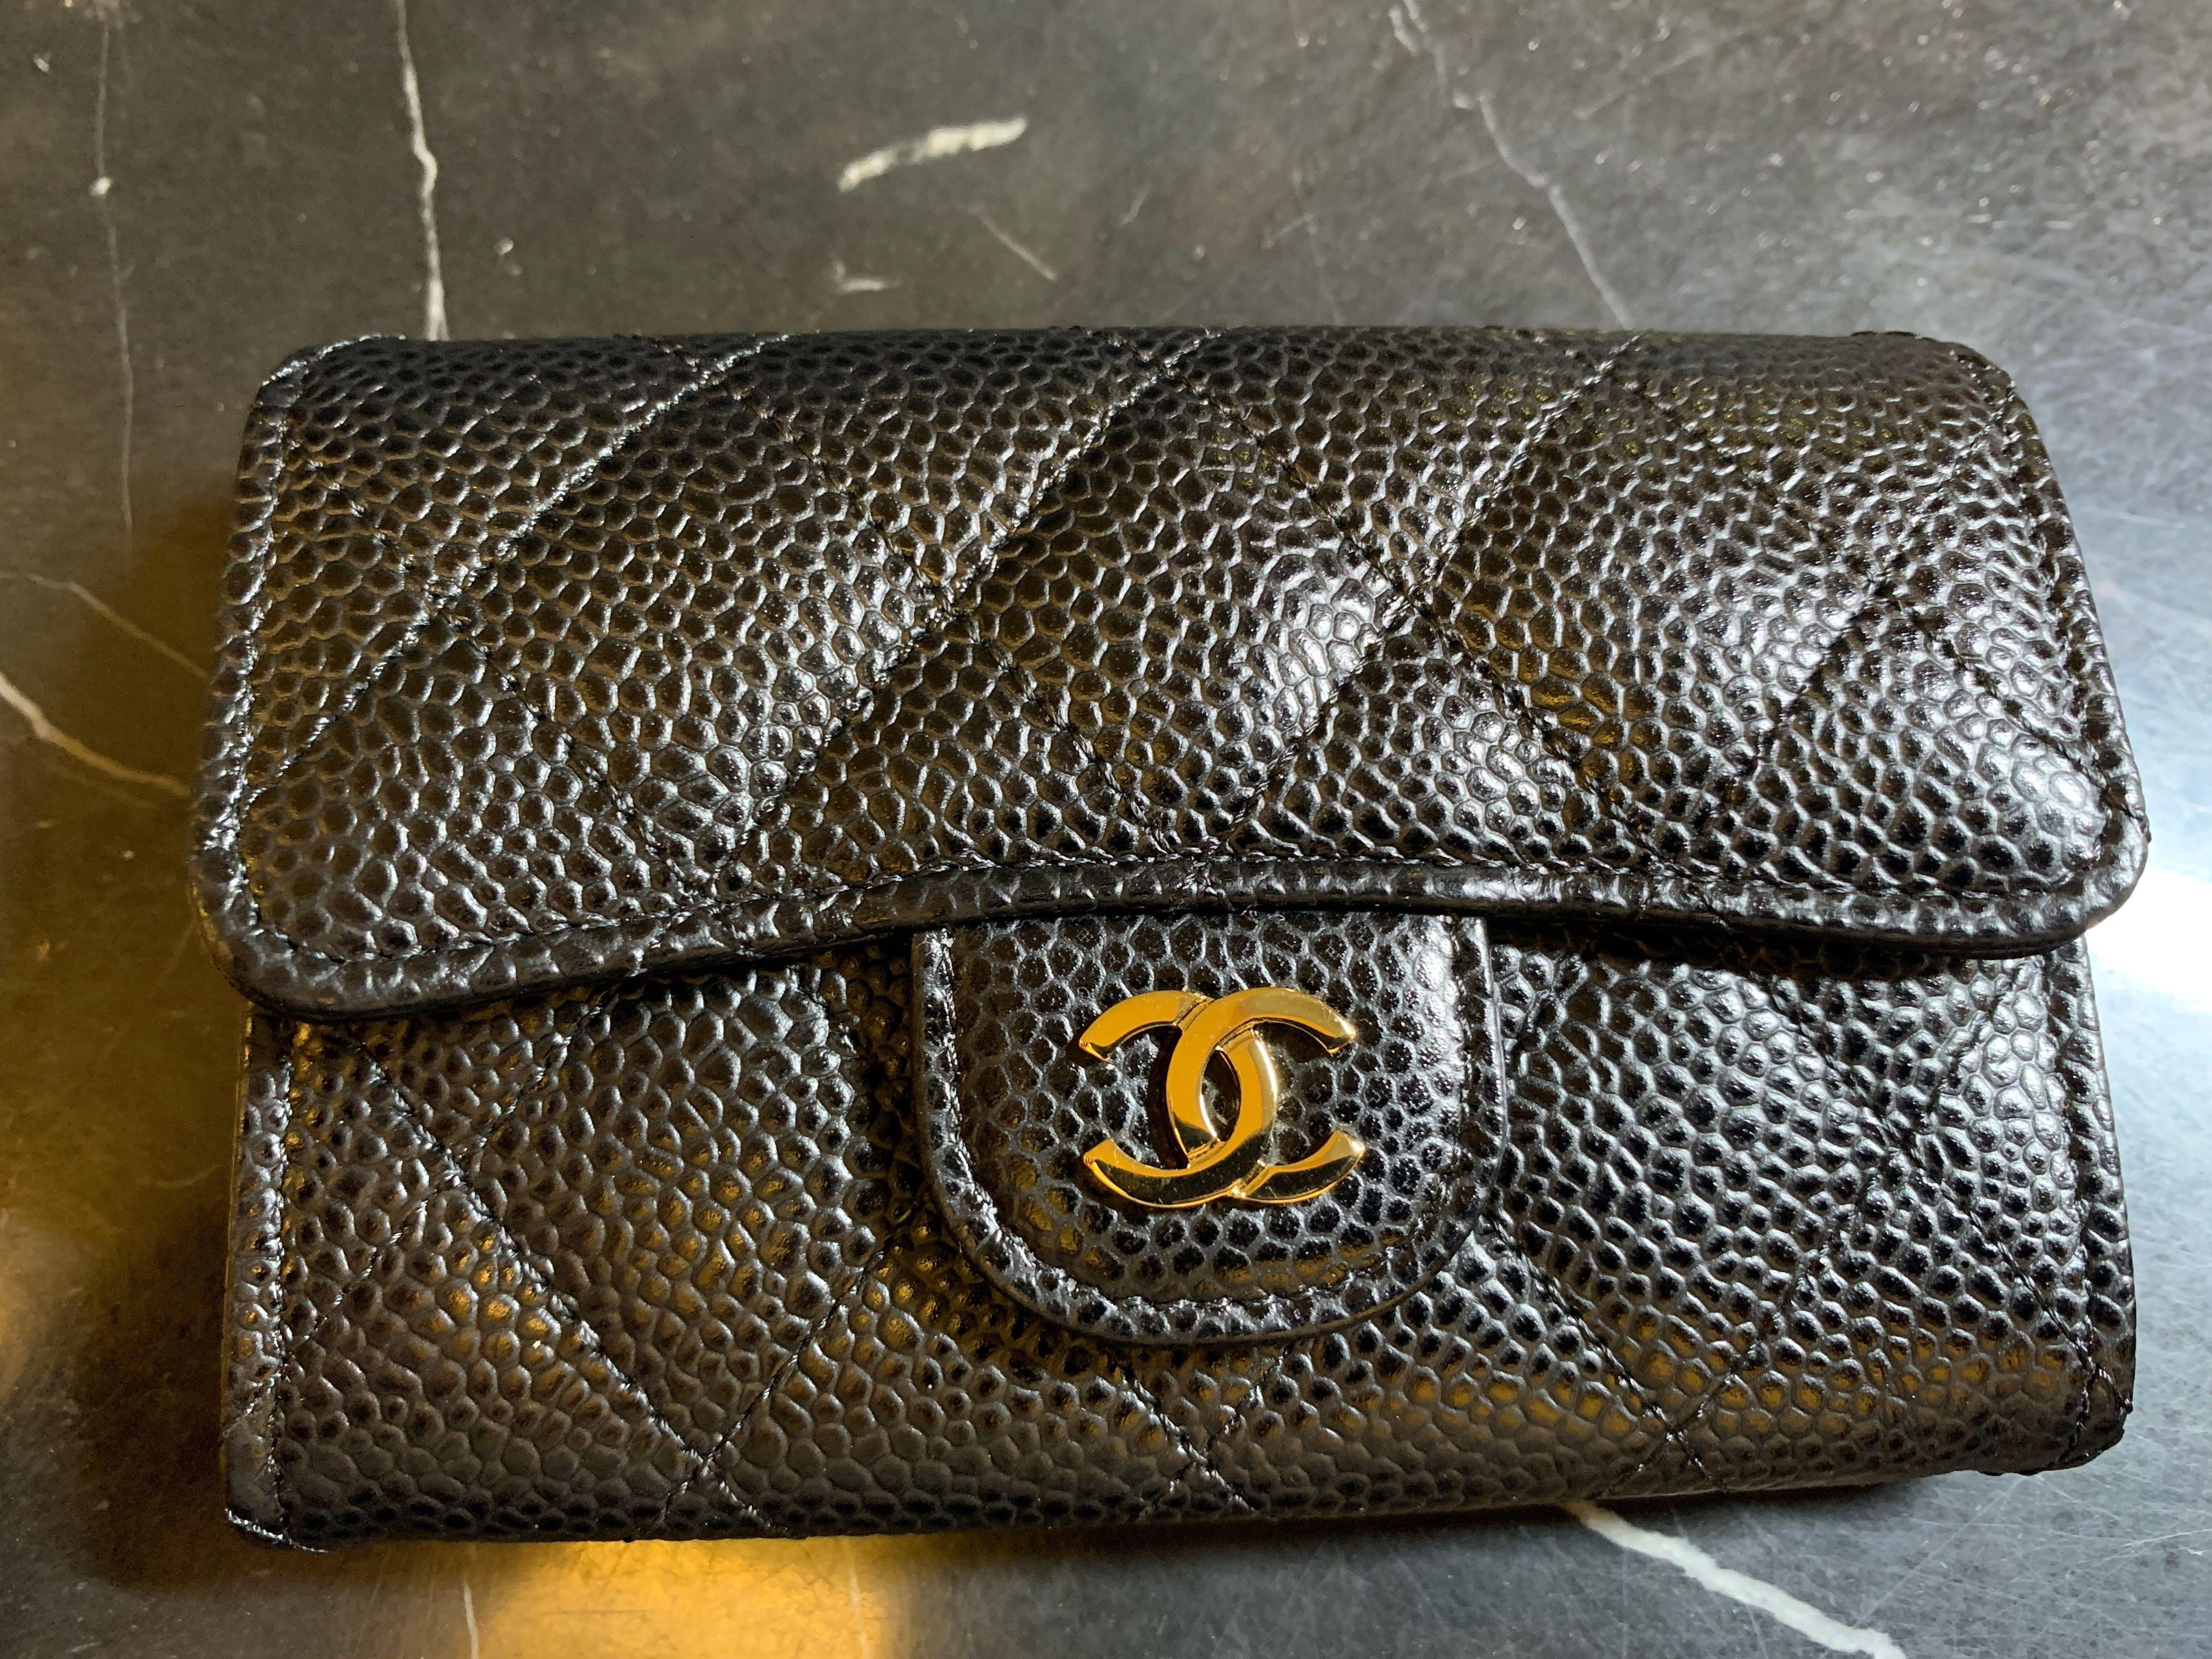 Full Set 100% authentic Chanel classic card holder